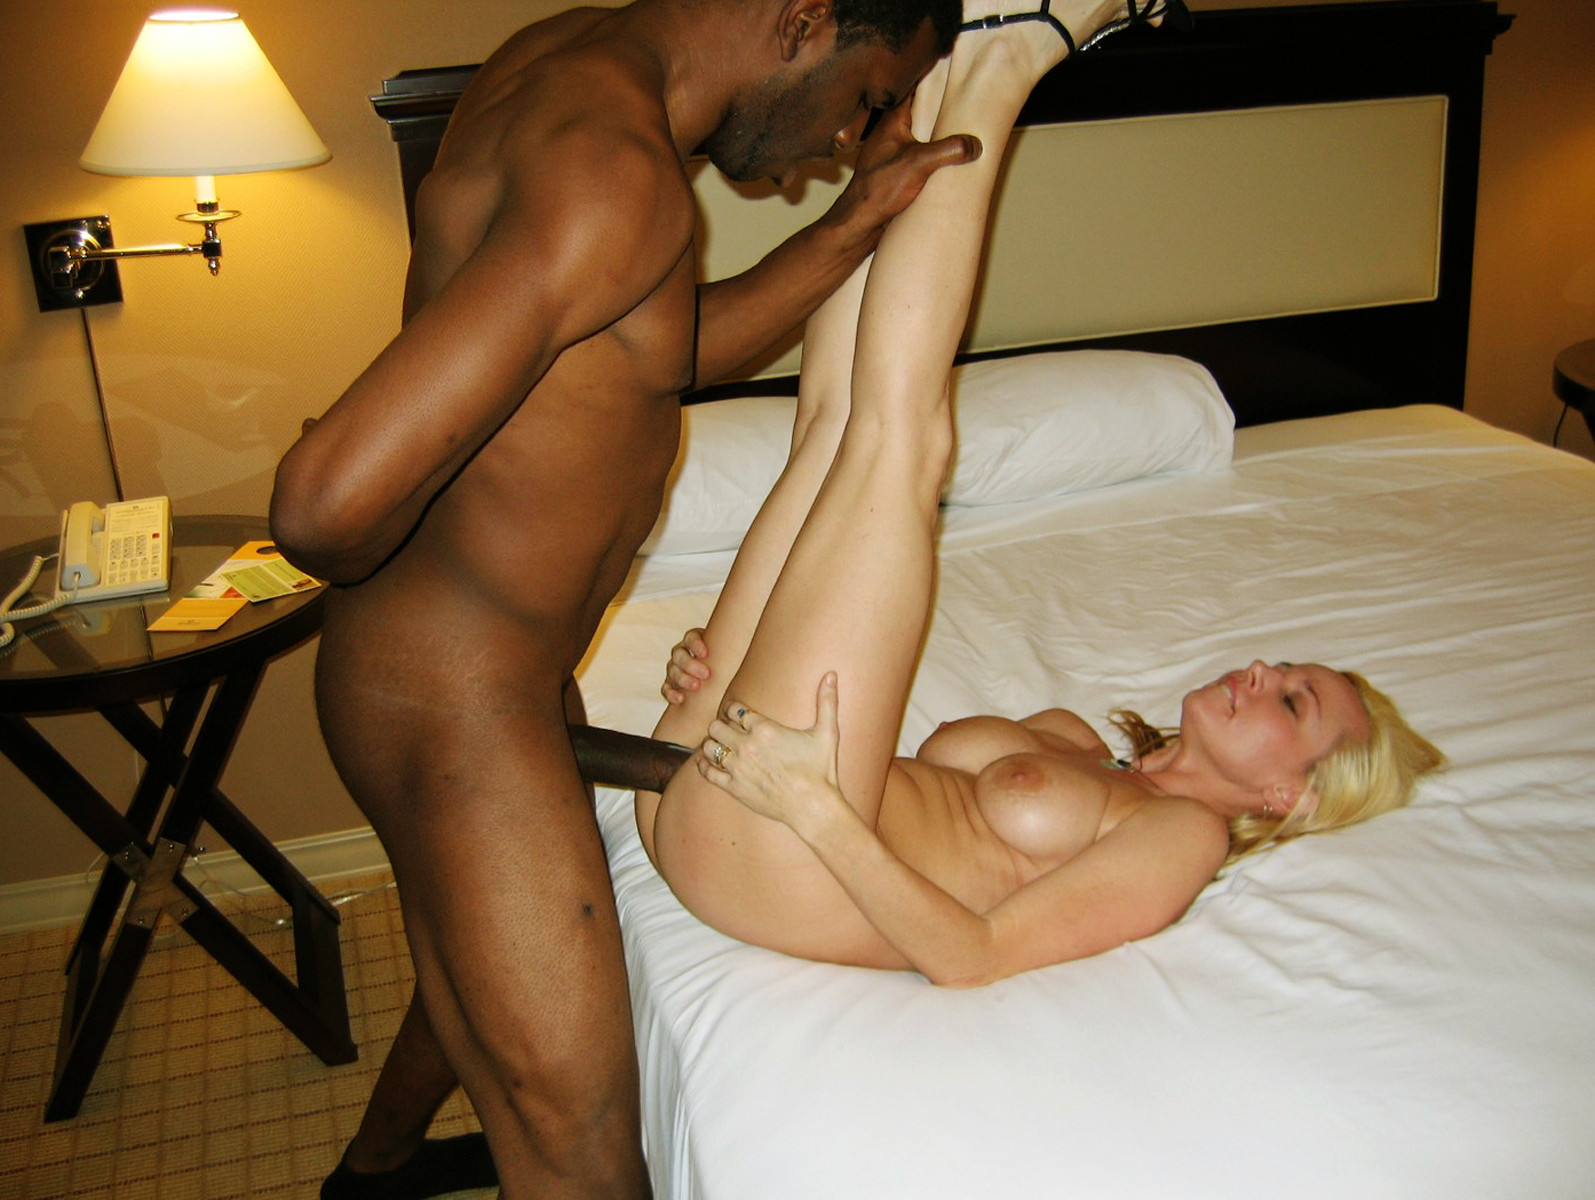 haired-black-men-prefer-which-sexual-position